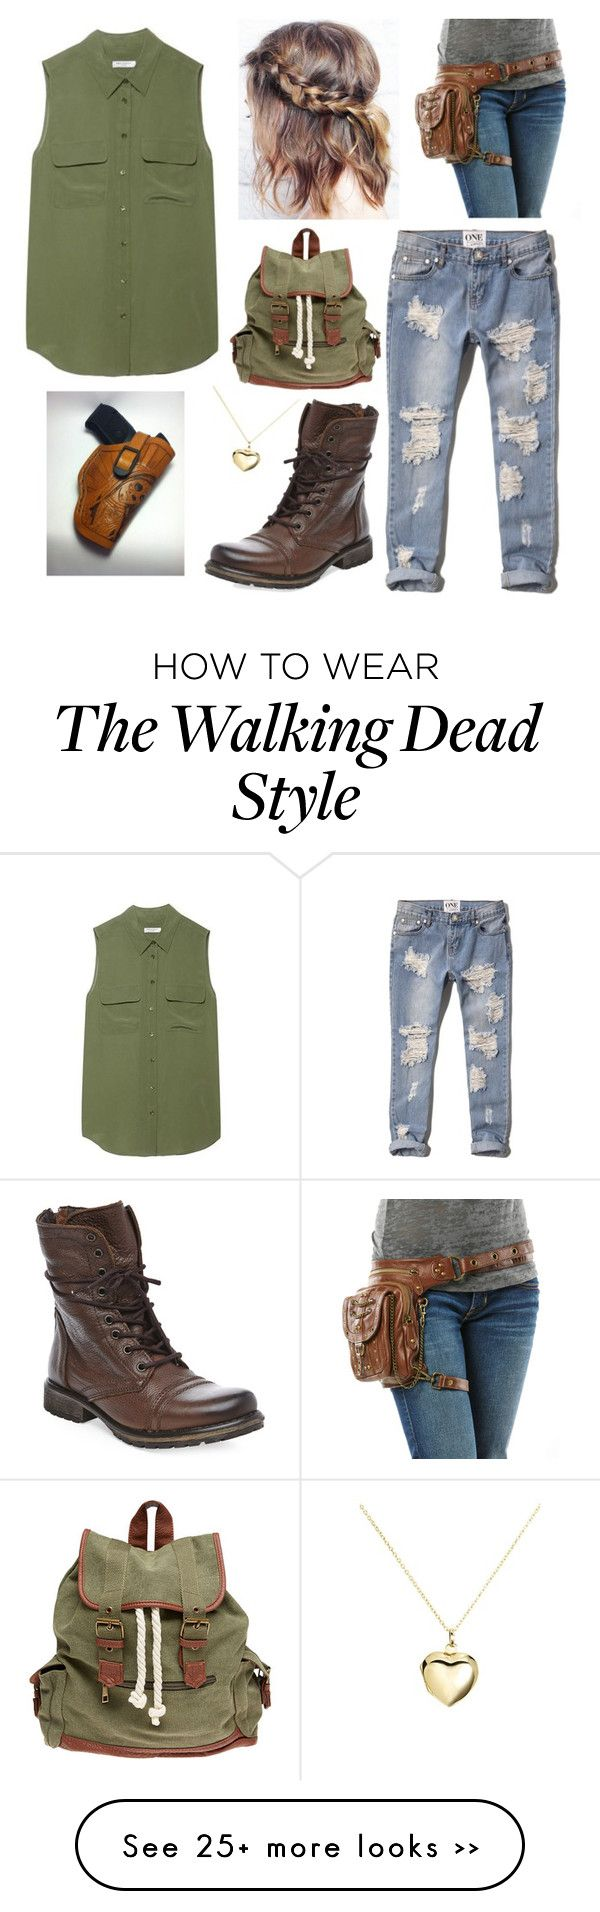 """the walking dead cosplay"" by my-abbs on Polyvore featuring Equipment, Abercrombie & Fitch, Steve Madden, Wet Seal and Argento Vivo"